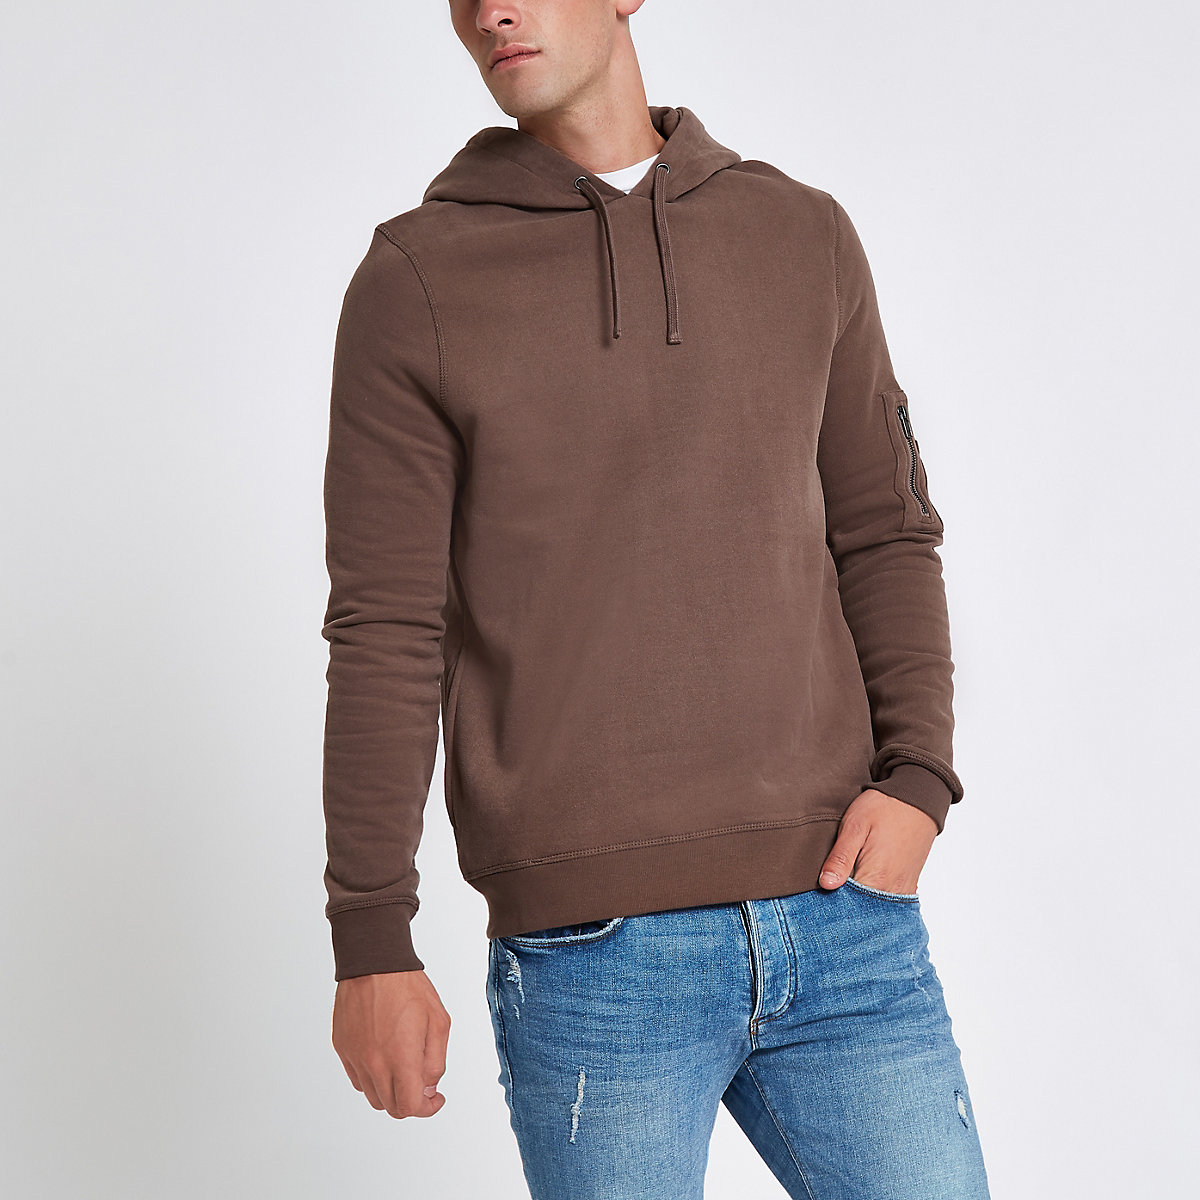 Brown long sleeve zip hoodie